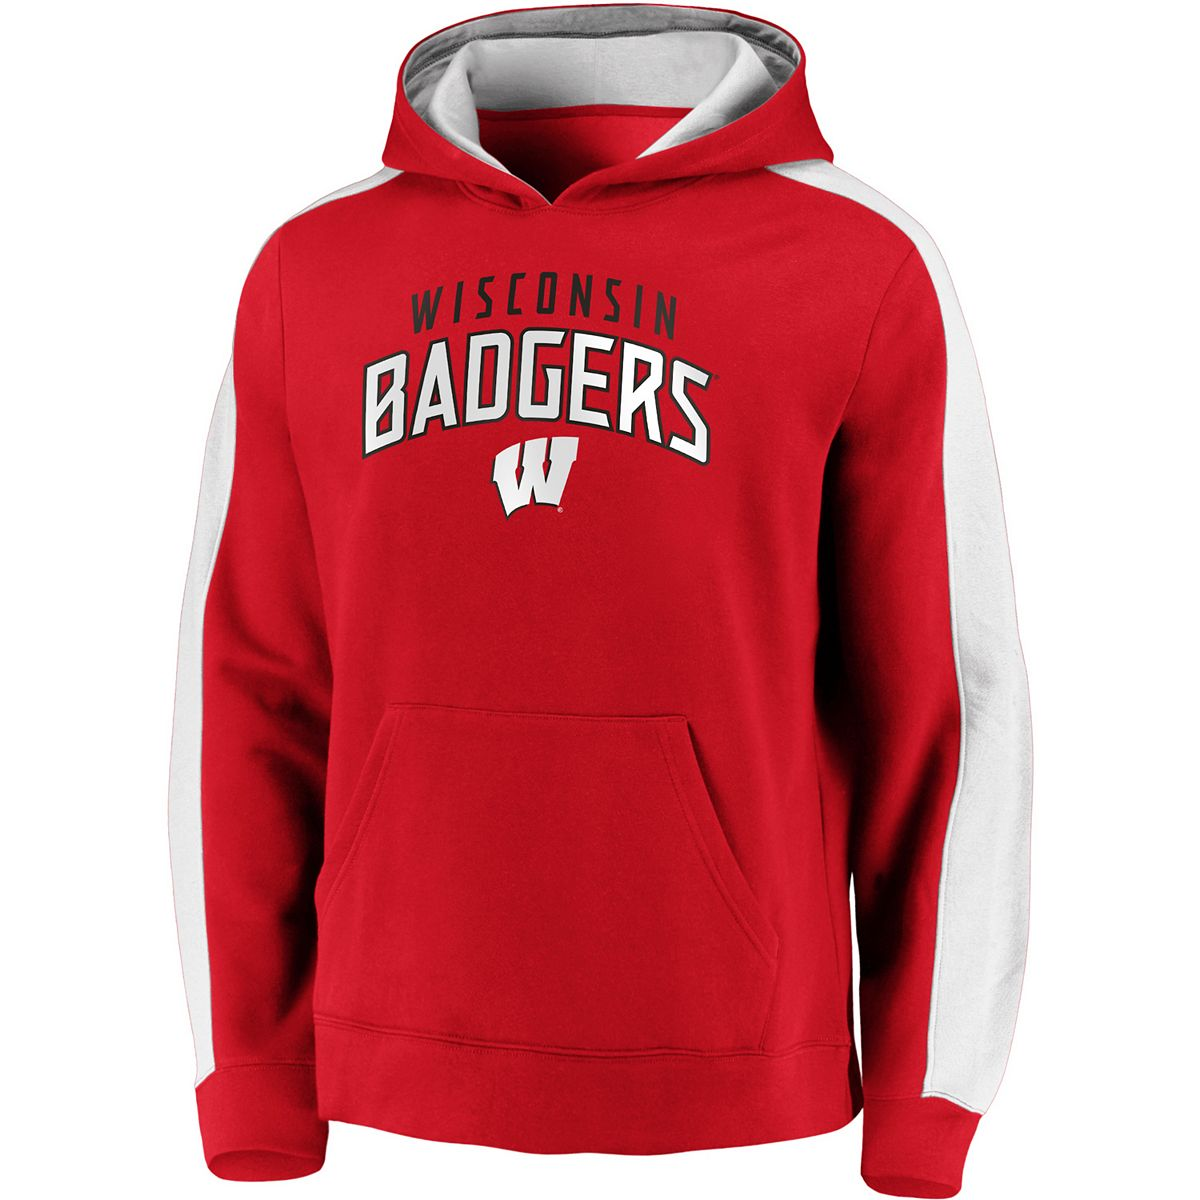 Kohl's: Save up to 90% on NCAA Apparel as low as $4.00